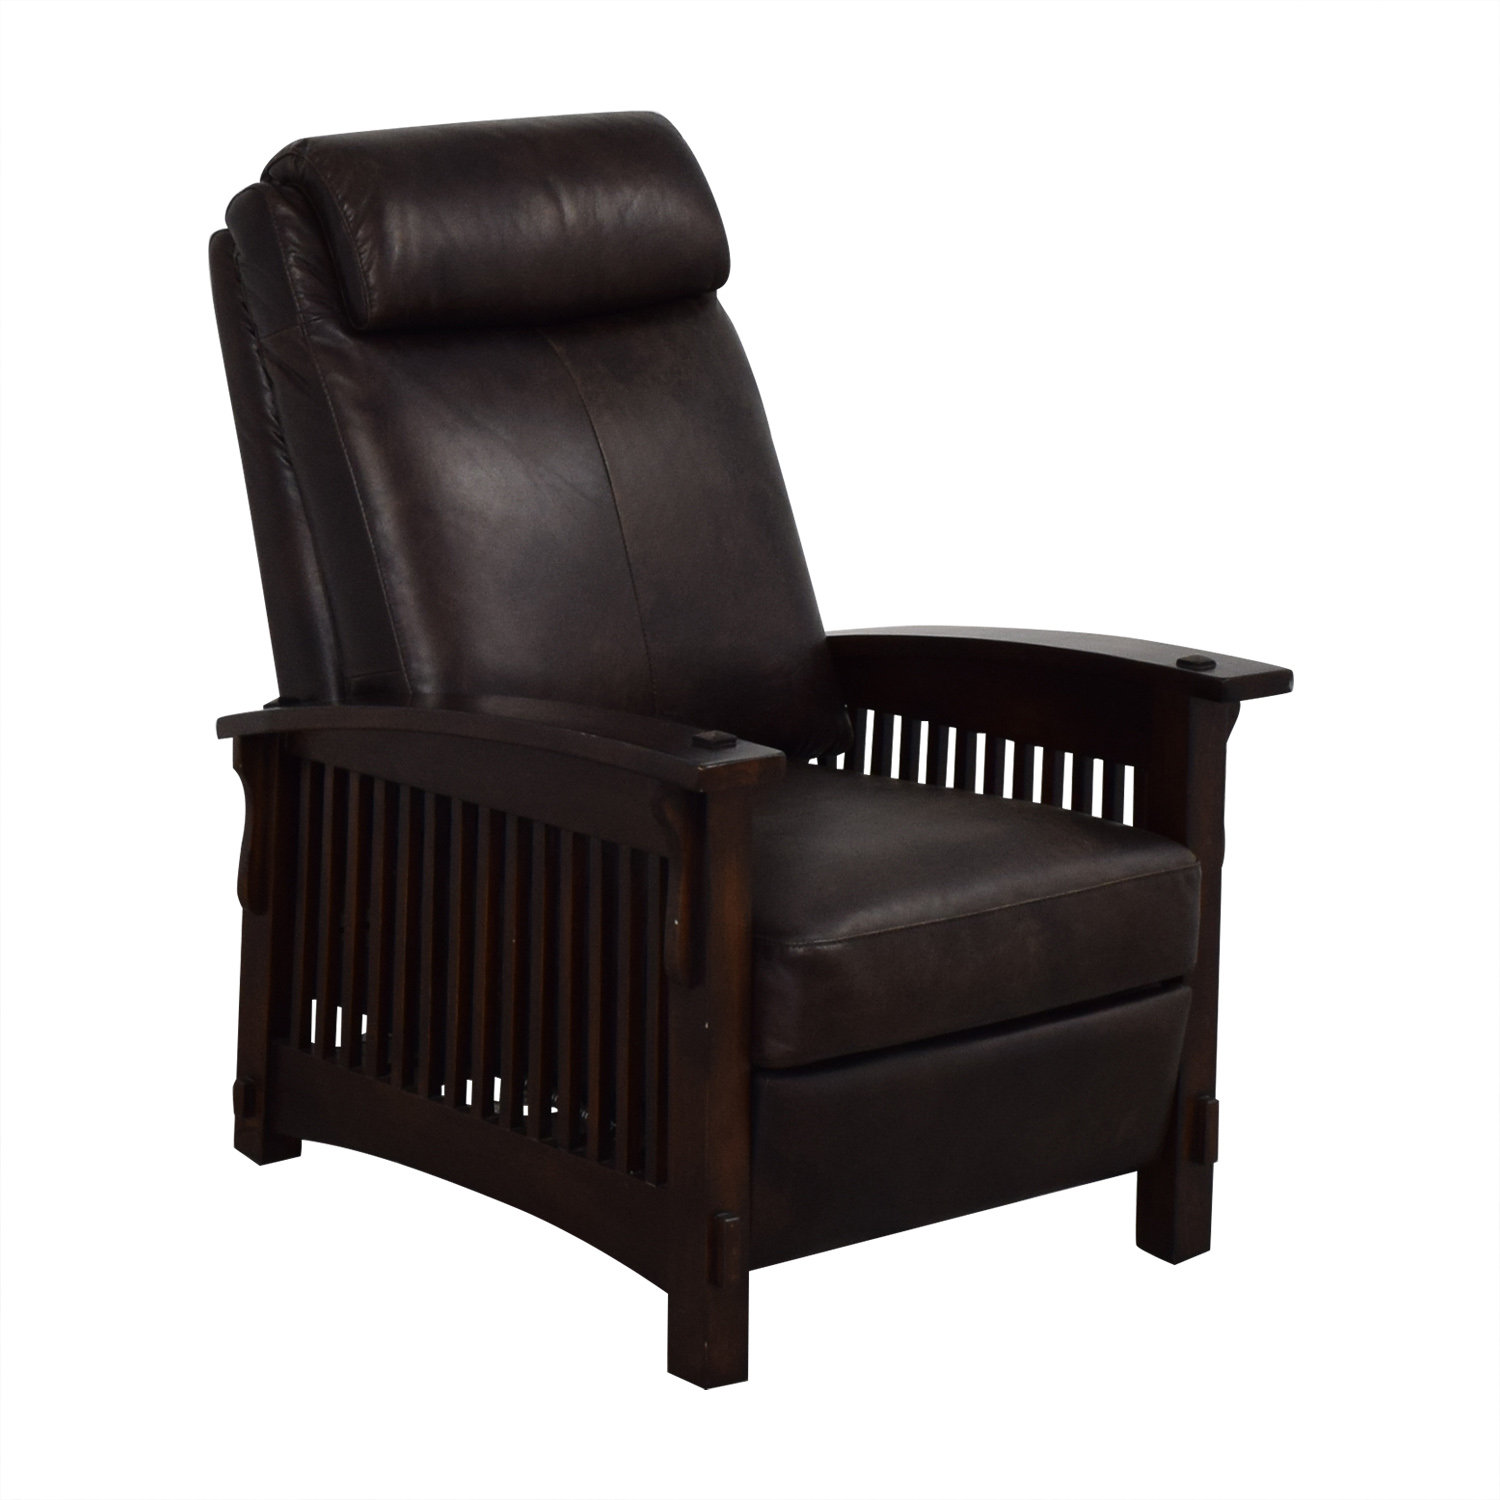 shop Recliner Chair with Wood Frame